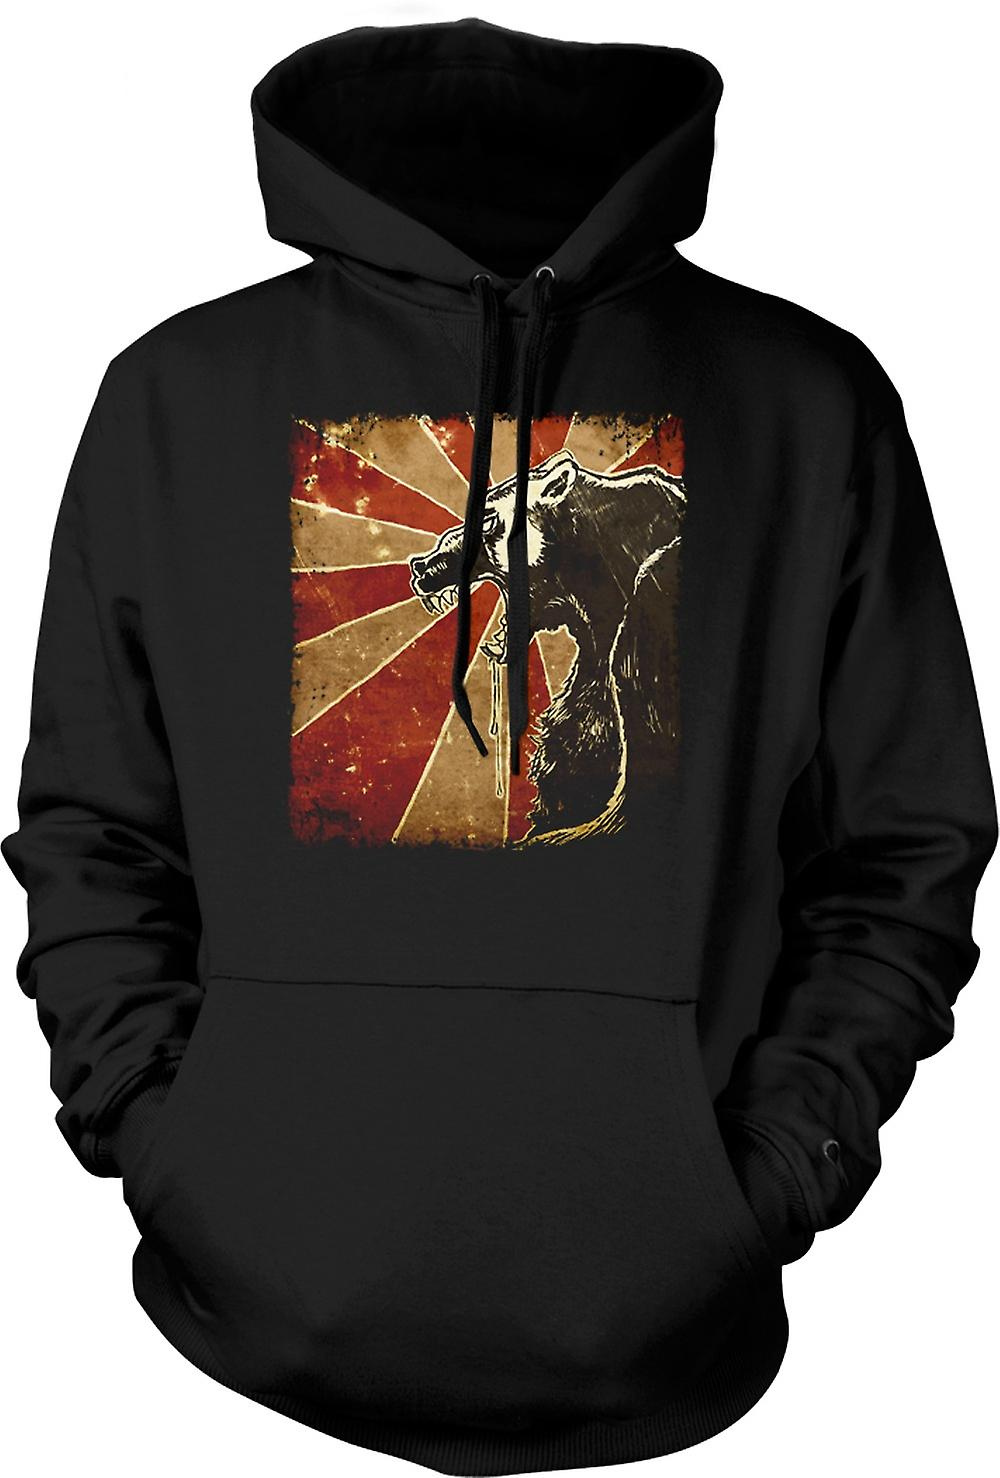 Kids Hoodie - Russian Bear - Cool Retro Poster